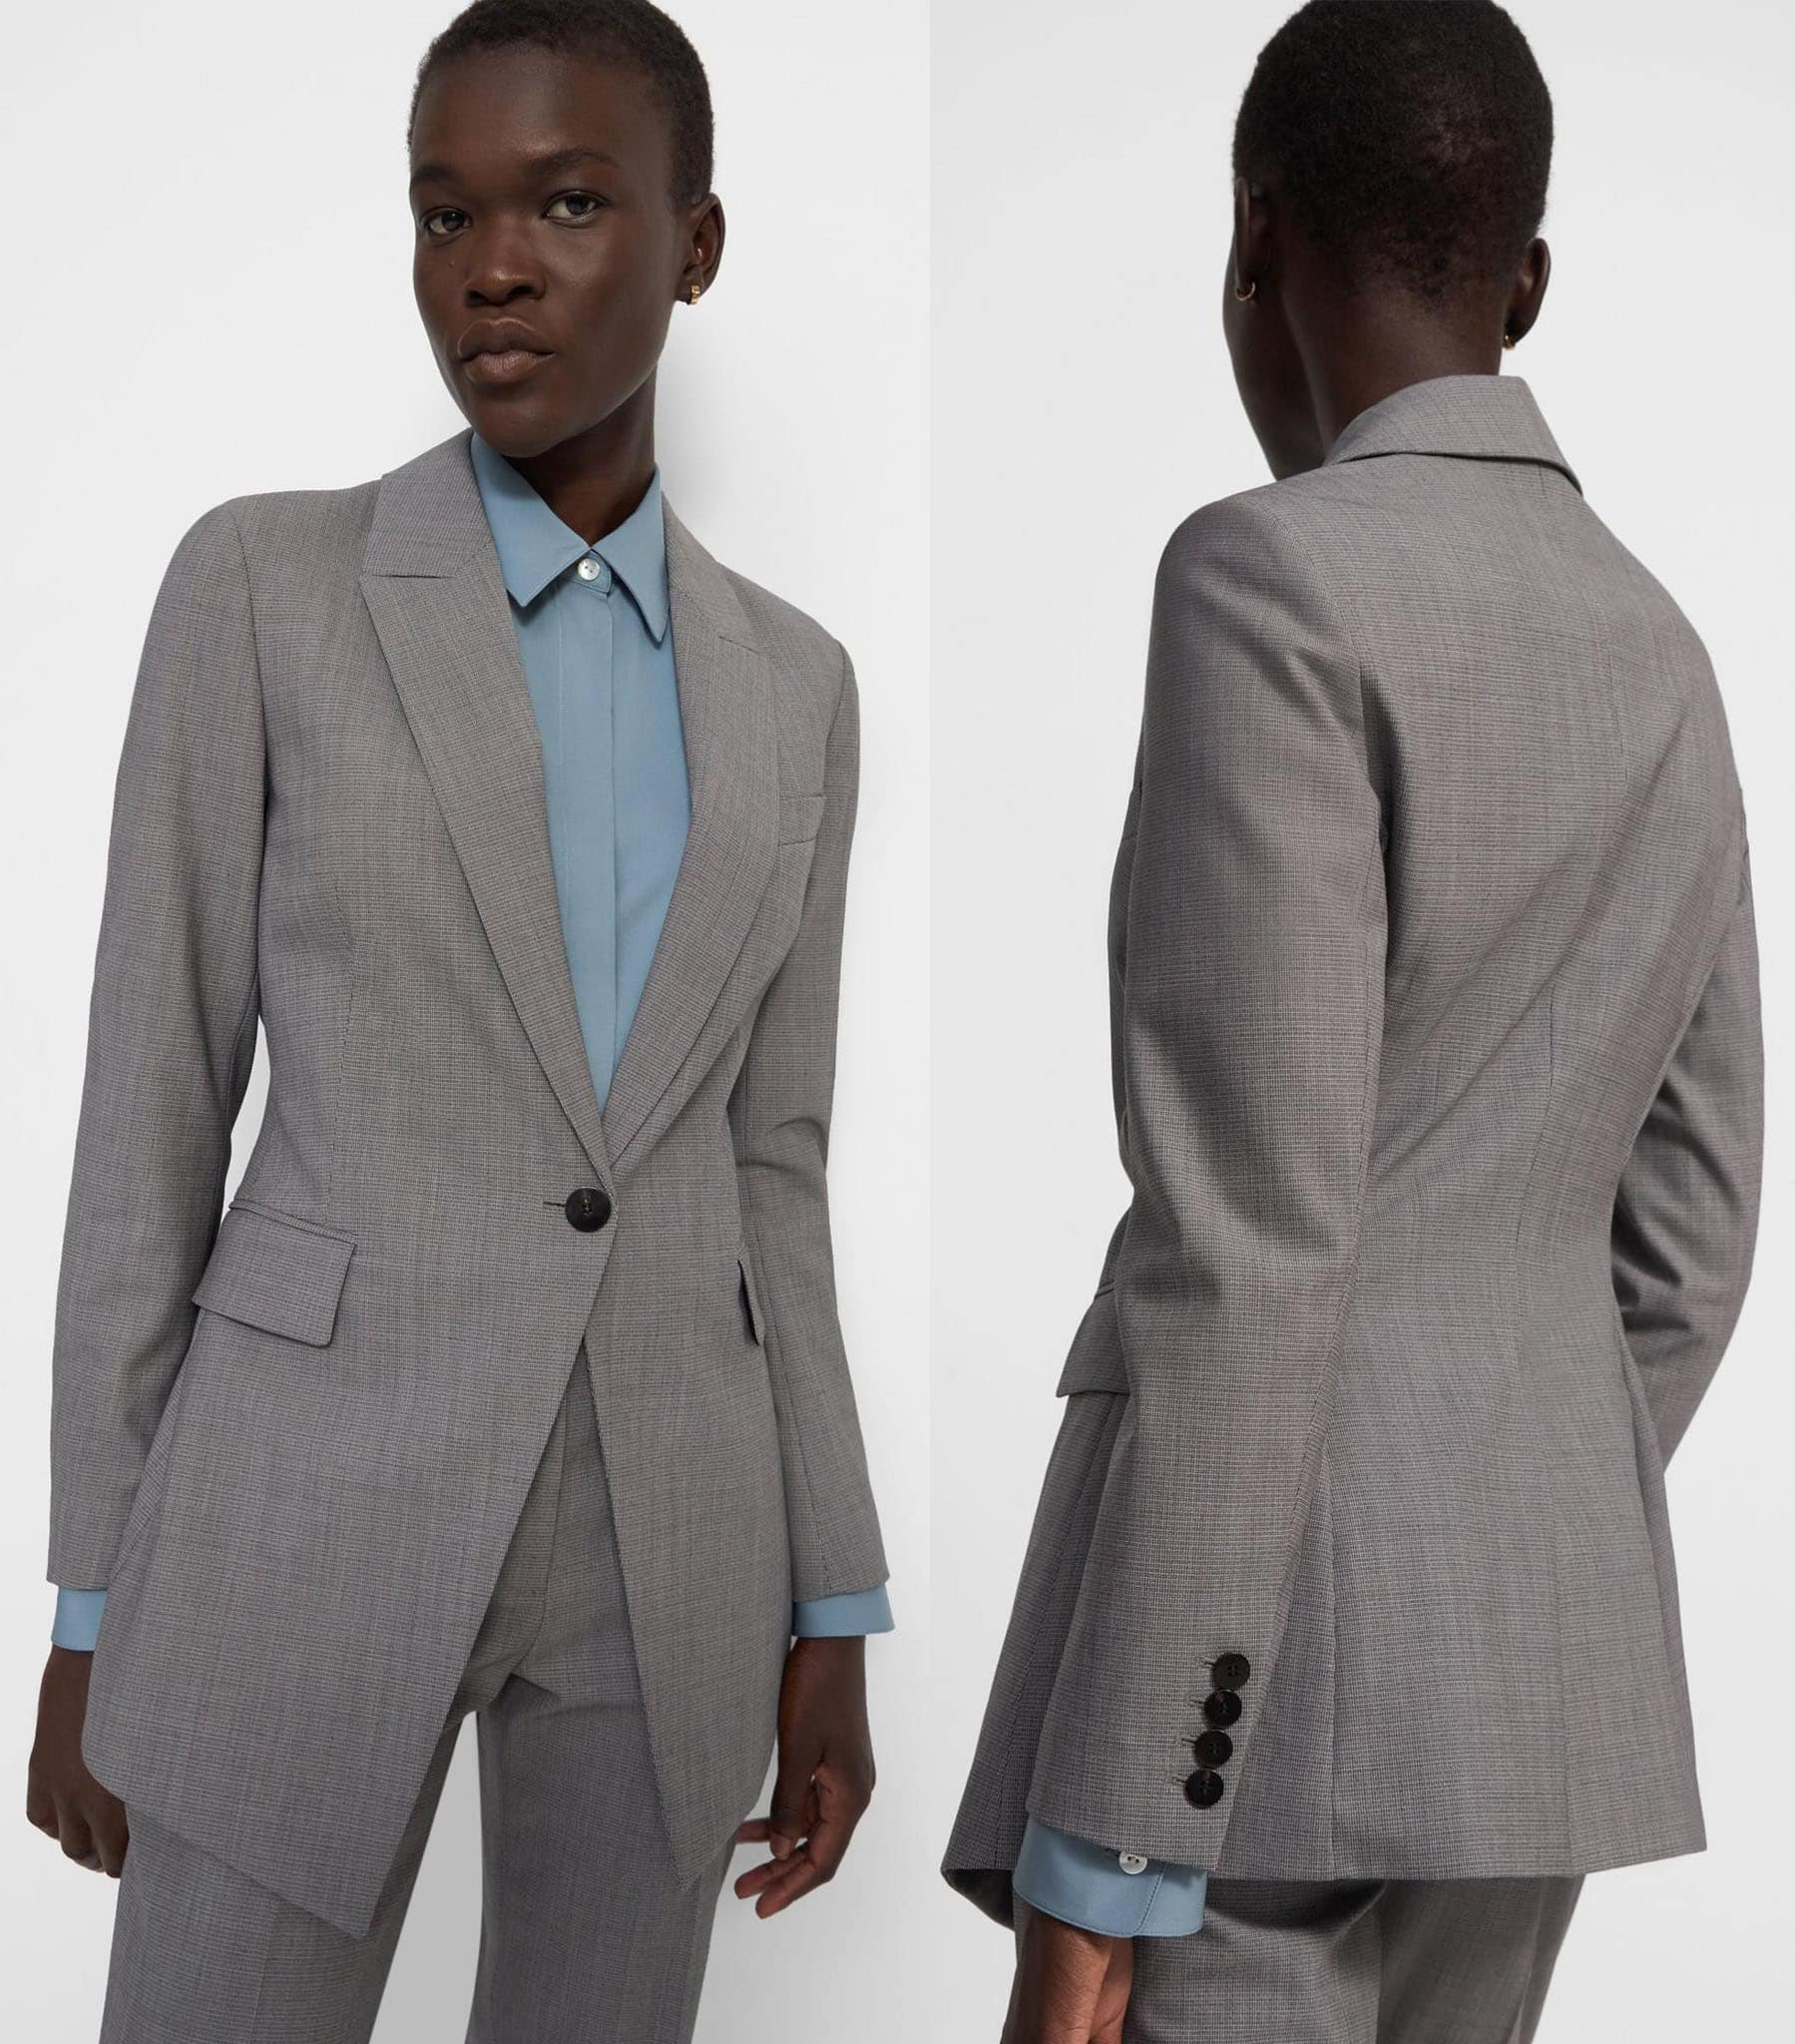 For quality classic office wear, visit New York-based contemporary clothing label Theory